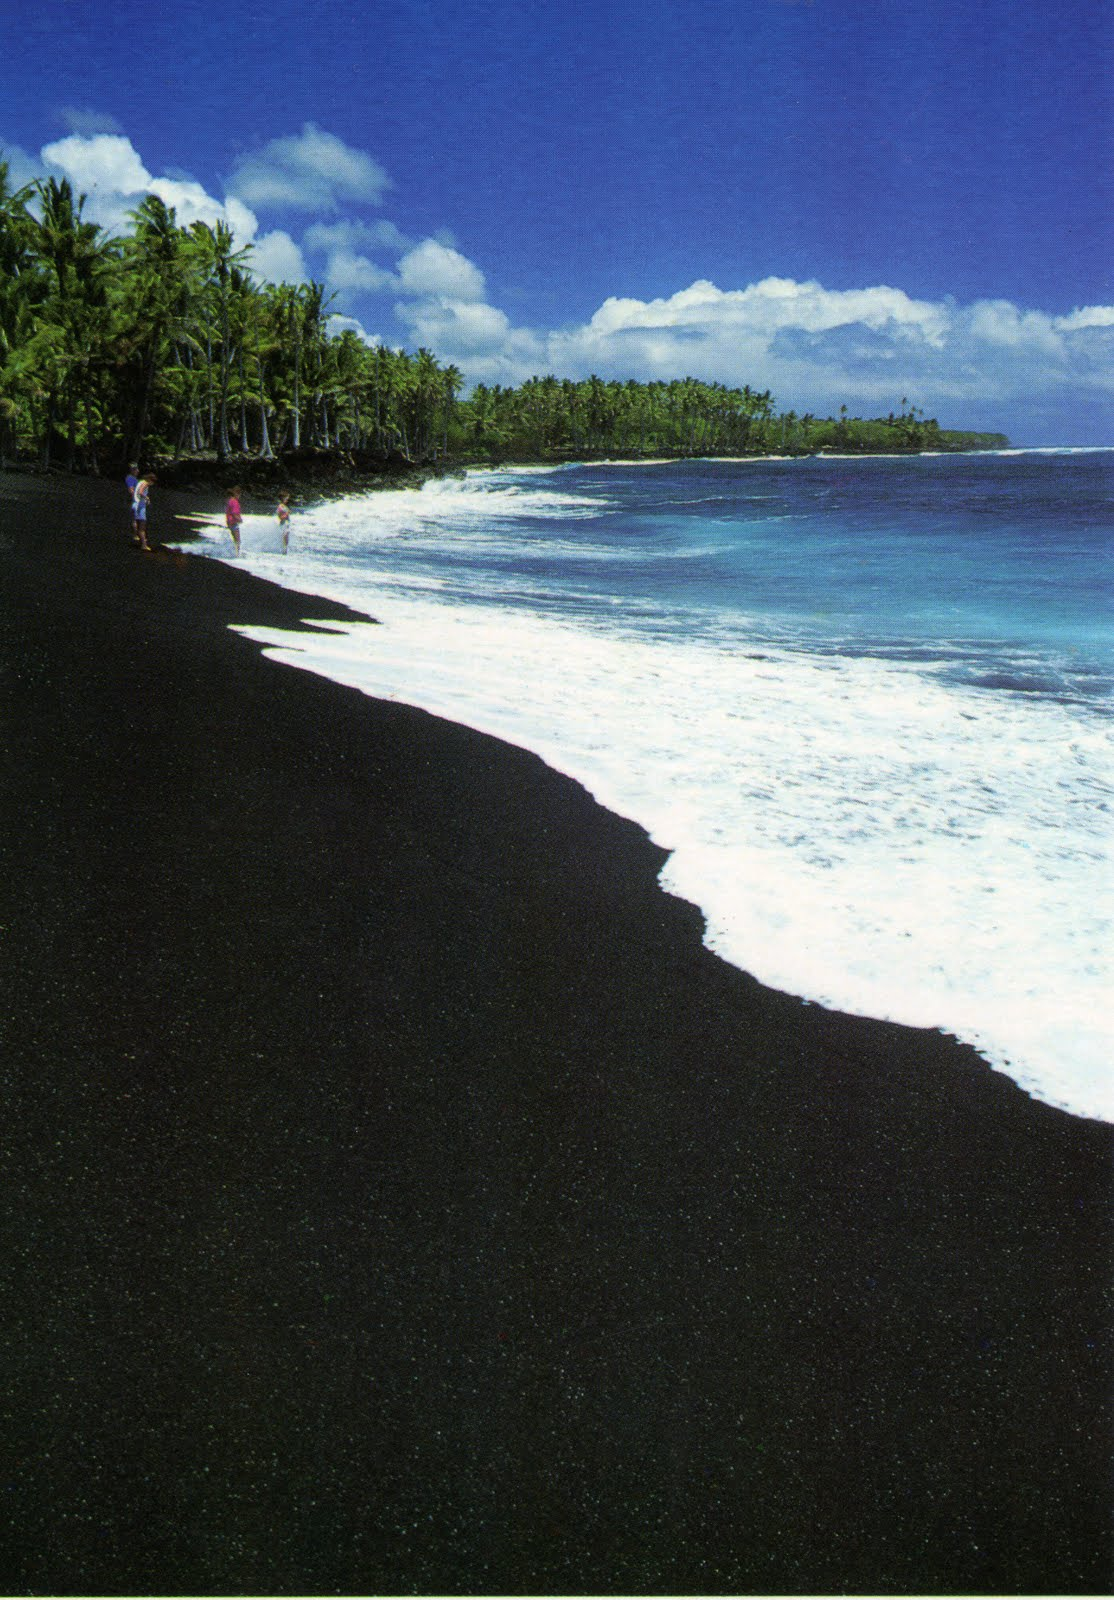 Kakalina manas Black sand beach hawaii